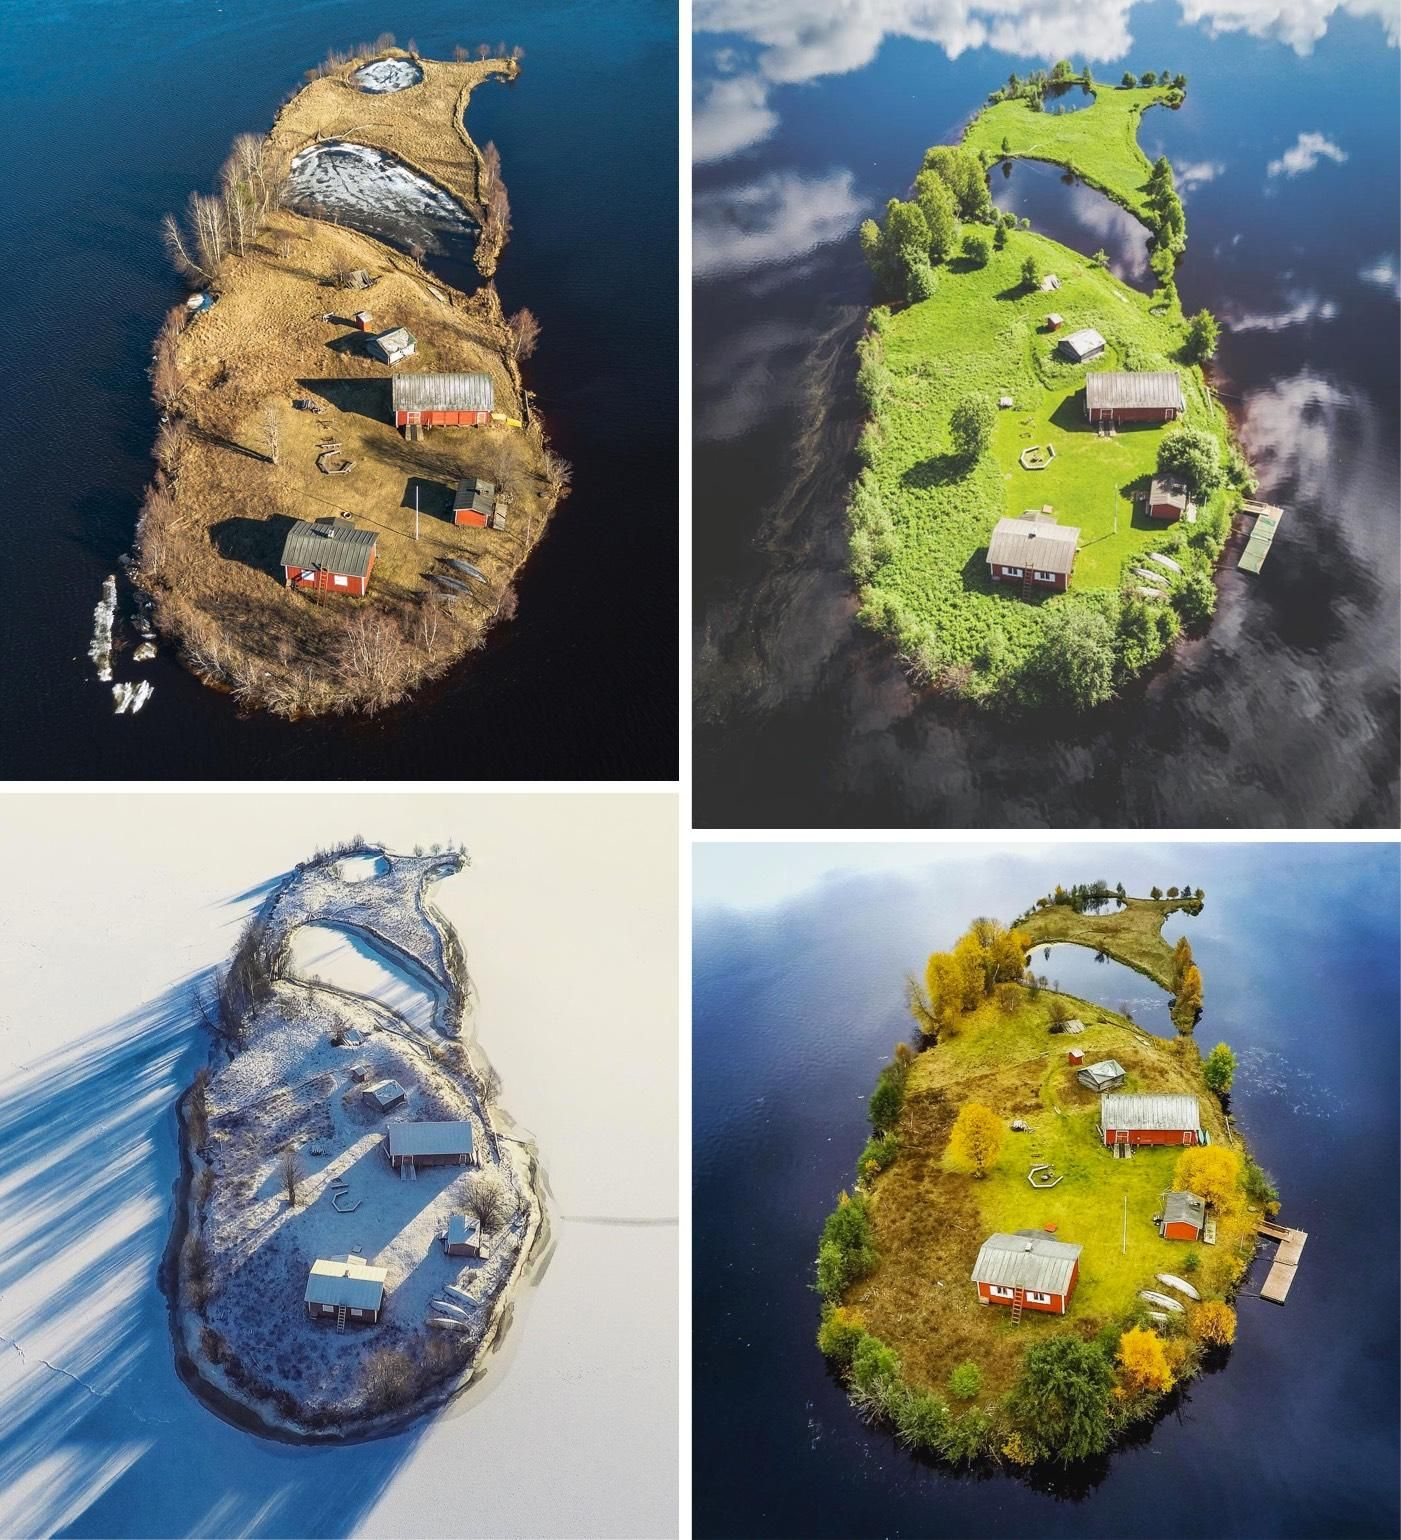 A Tiny Finnish Island in Four Seasons